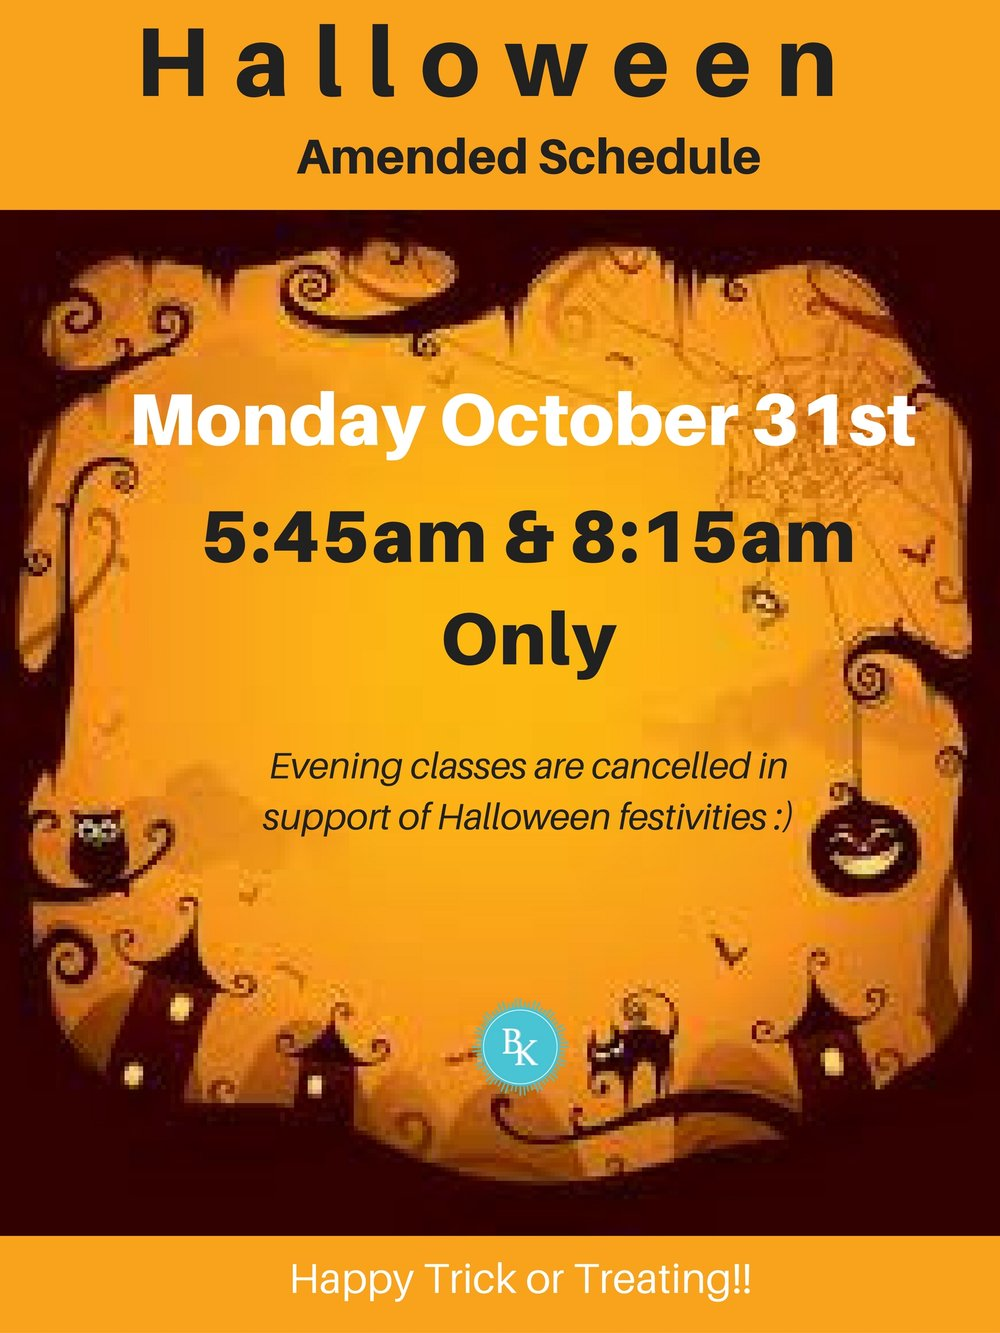 we will only be offering our morning classes on halloween monday oct 31st